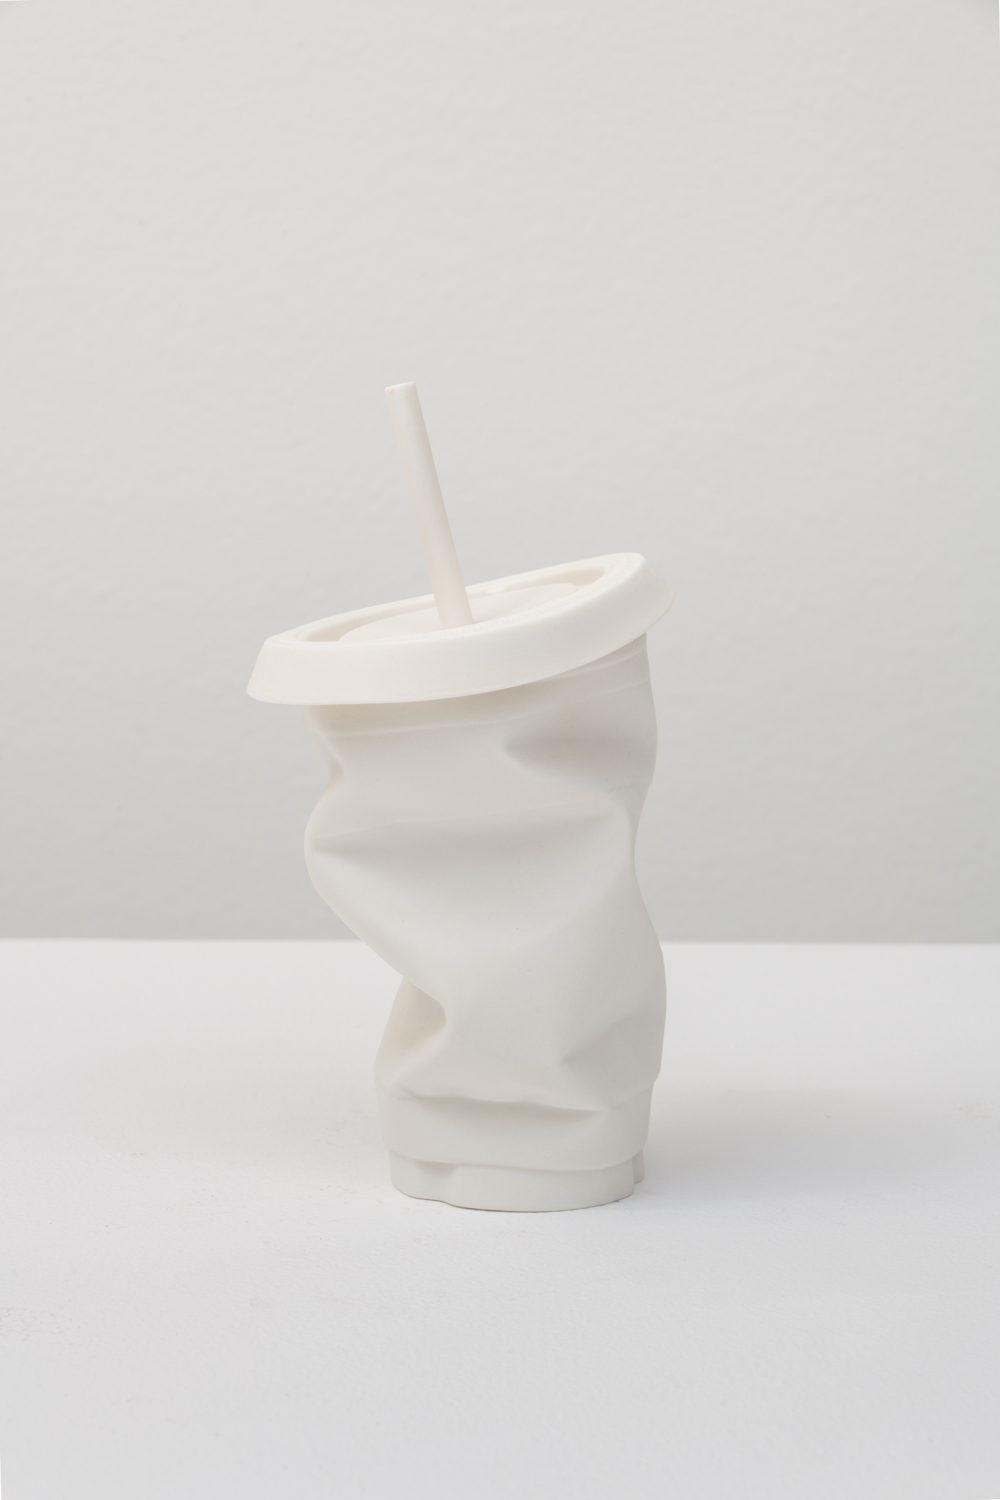 Garret Dran  Untitled, 2015  Vitrified translucent porcelain  7 x 4 x4 inches